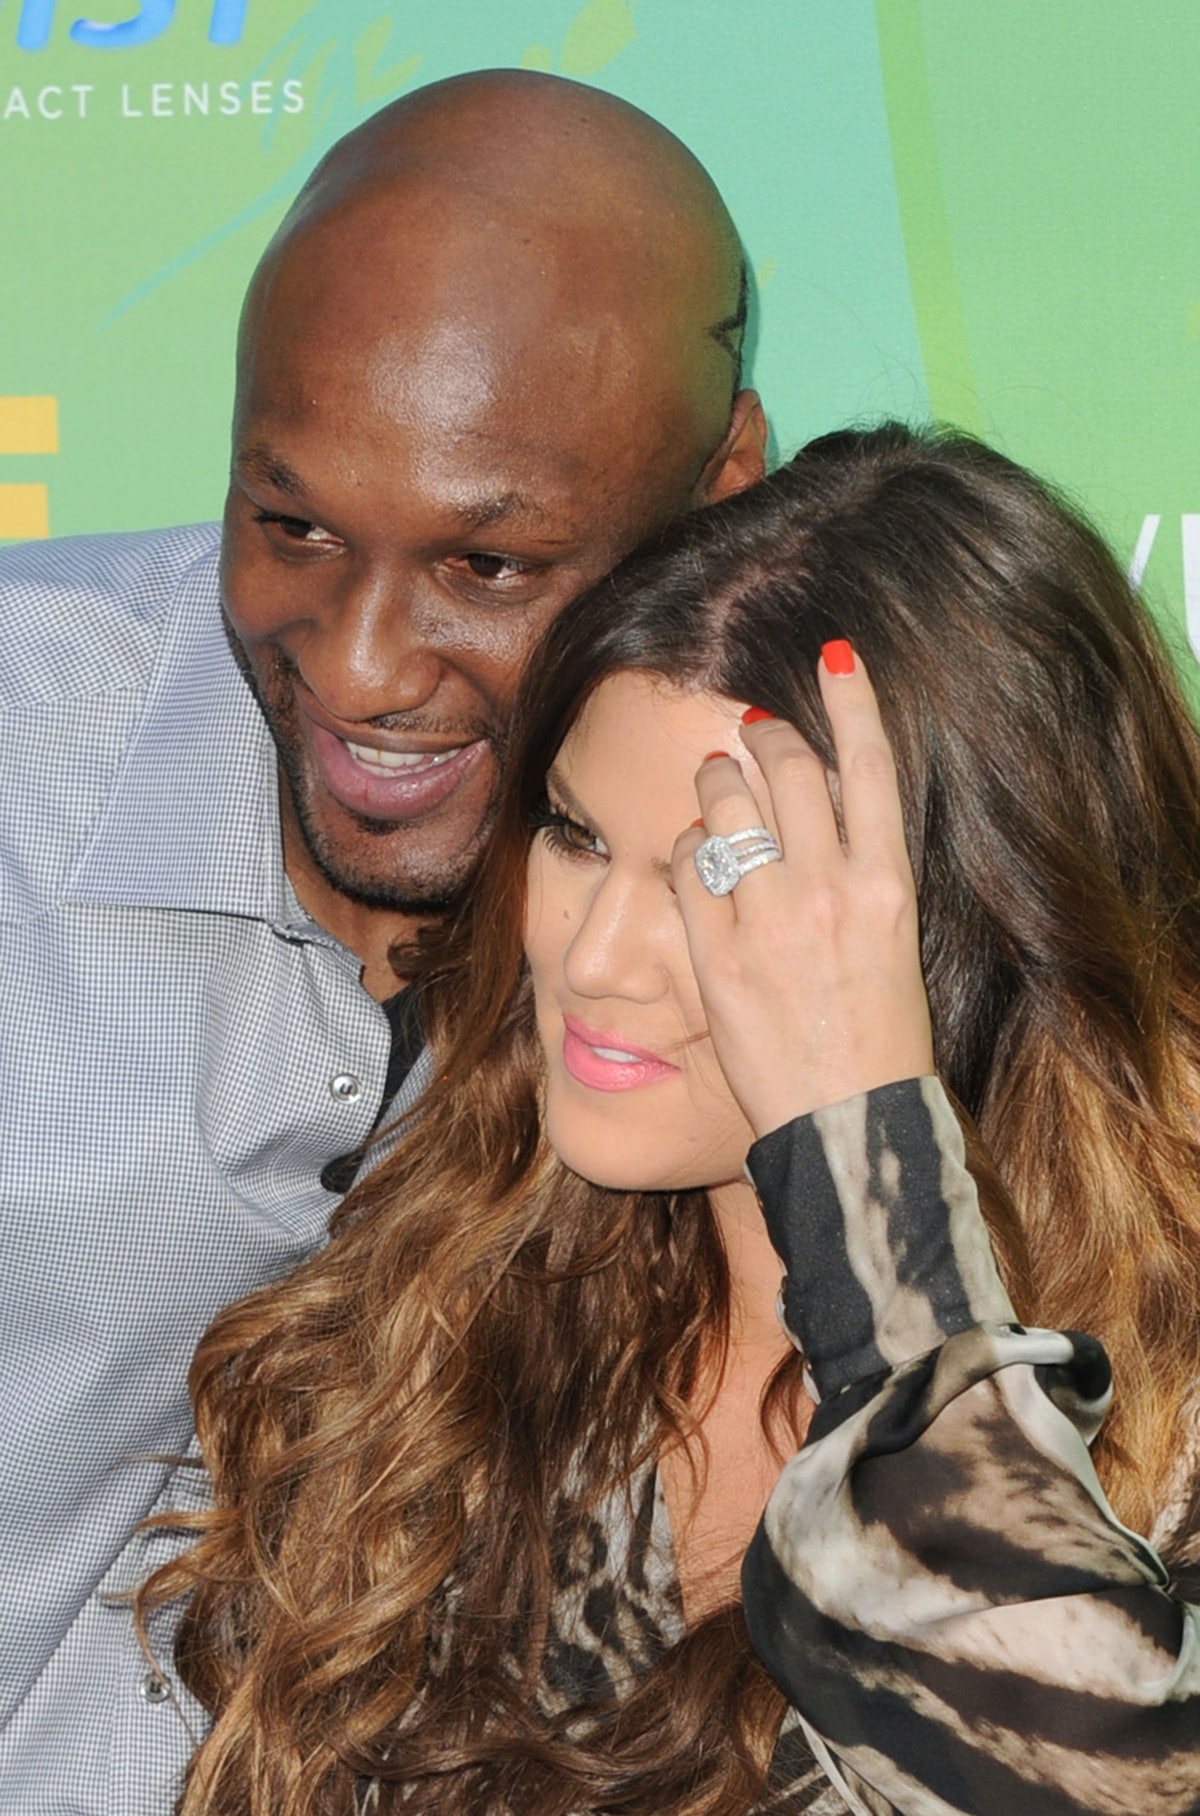 Lamar Odom's Reported Quote About Getting Back Together With Khloe Kardashian Is Interesting